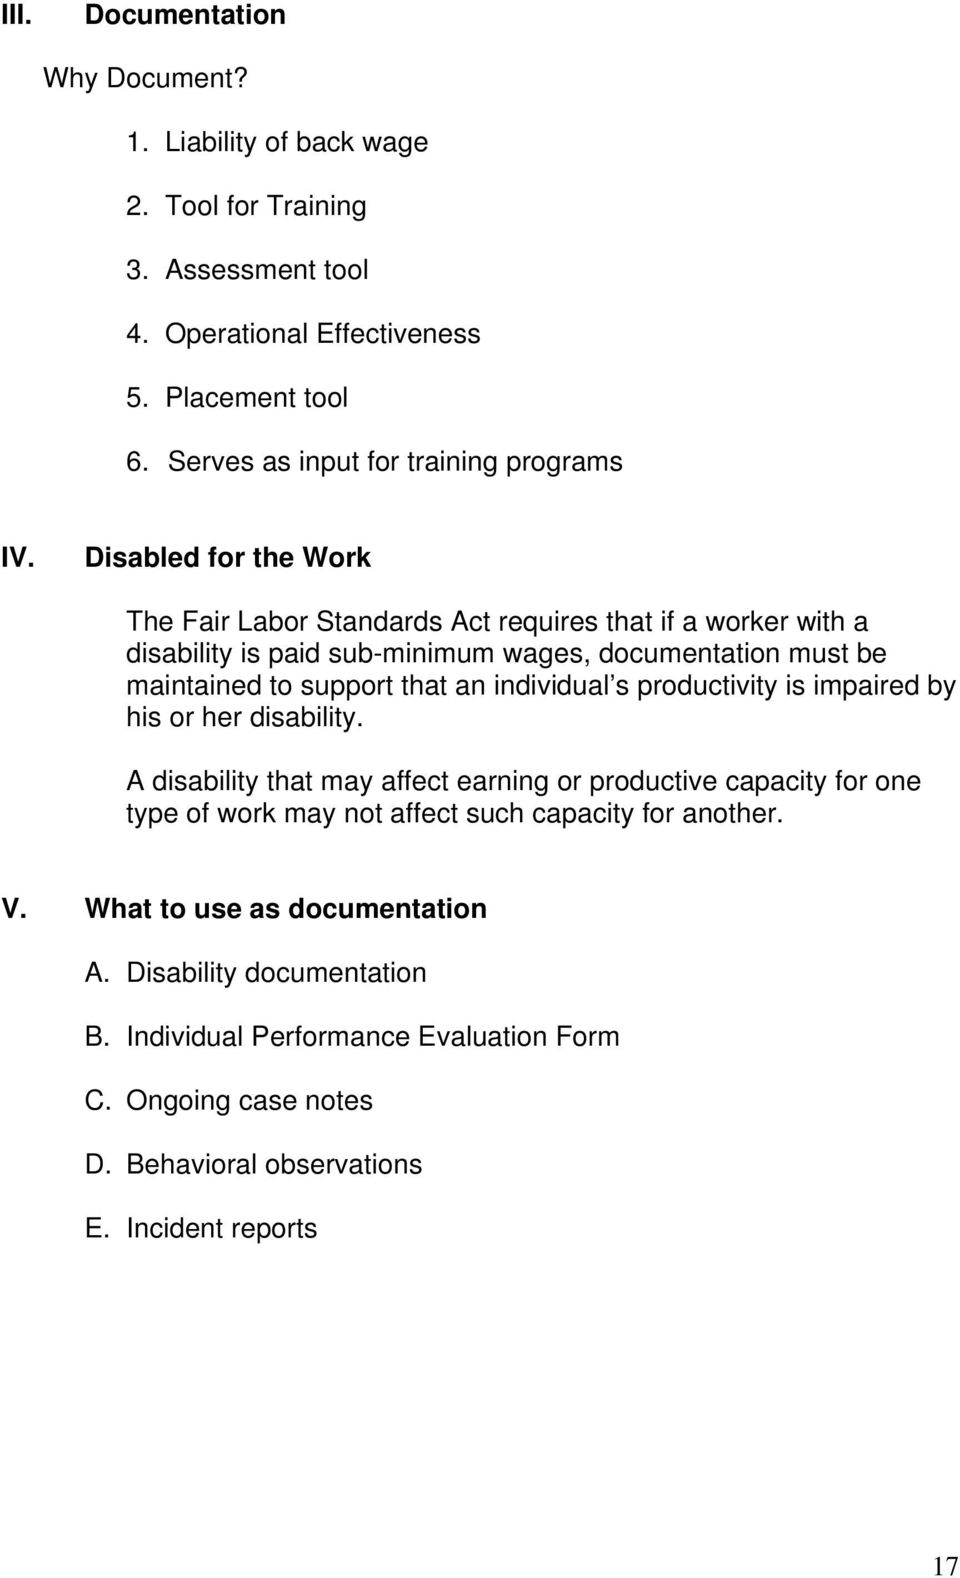 Disabled for the Work The Fair Labor Standards Act requires that if a worker with a disability is paid sub-minimum wages, documentation must be maintained to support that an